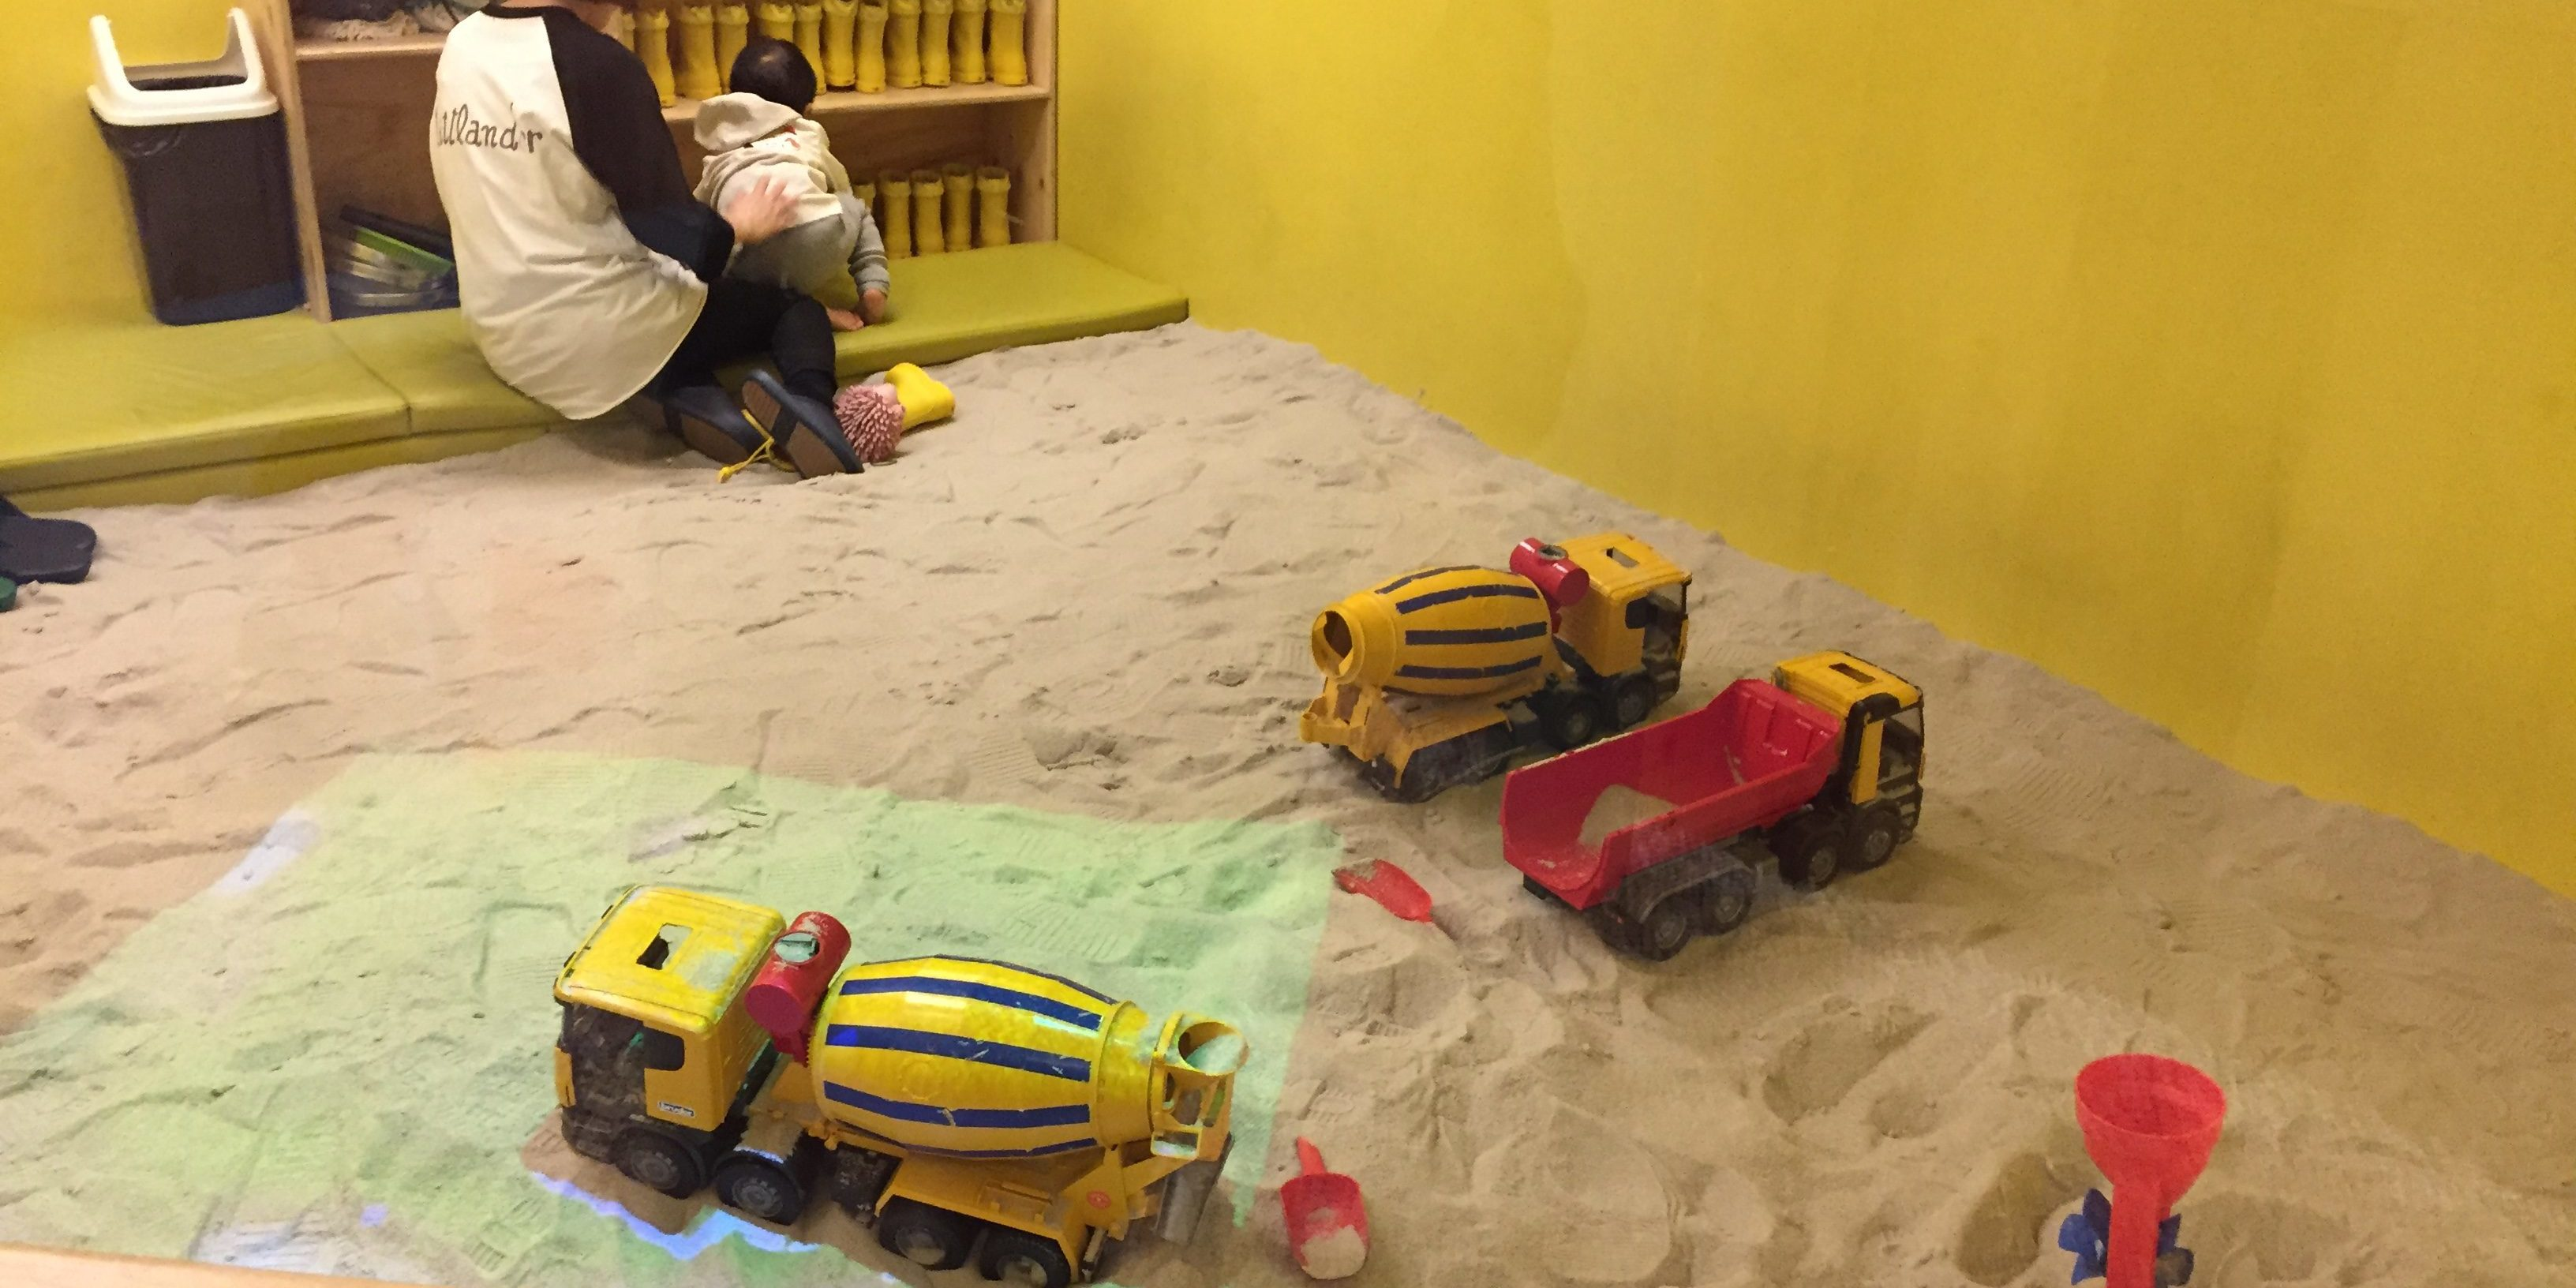 Indoor kids cafe sandpit Seoul